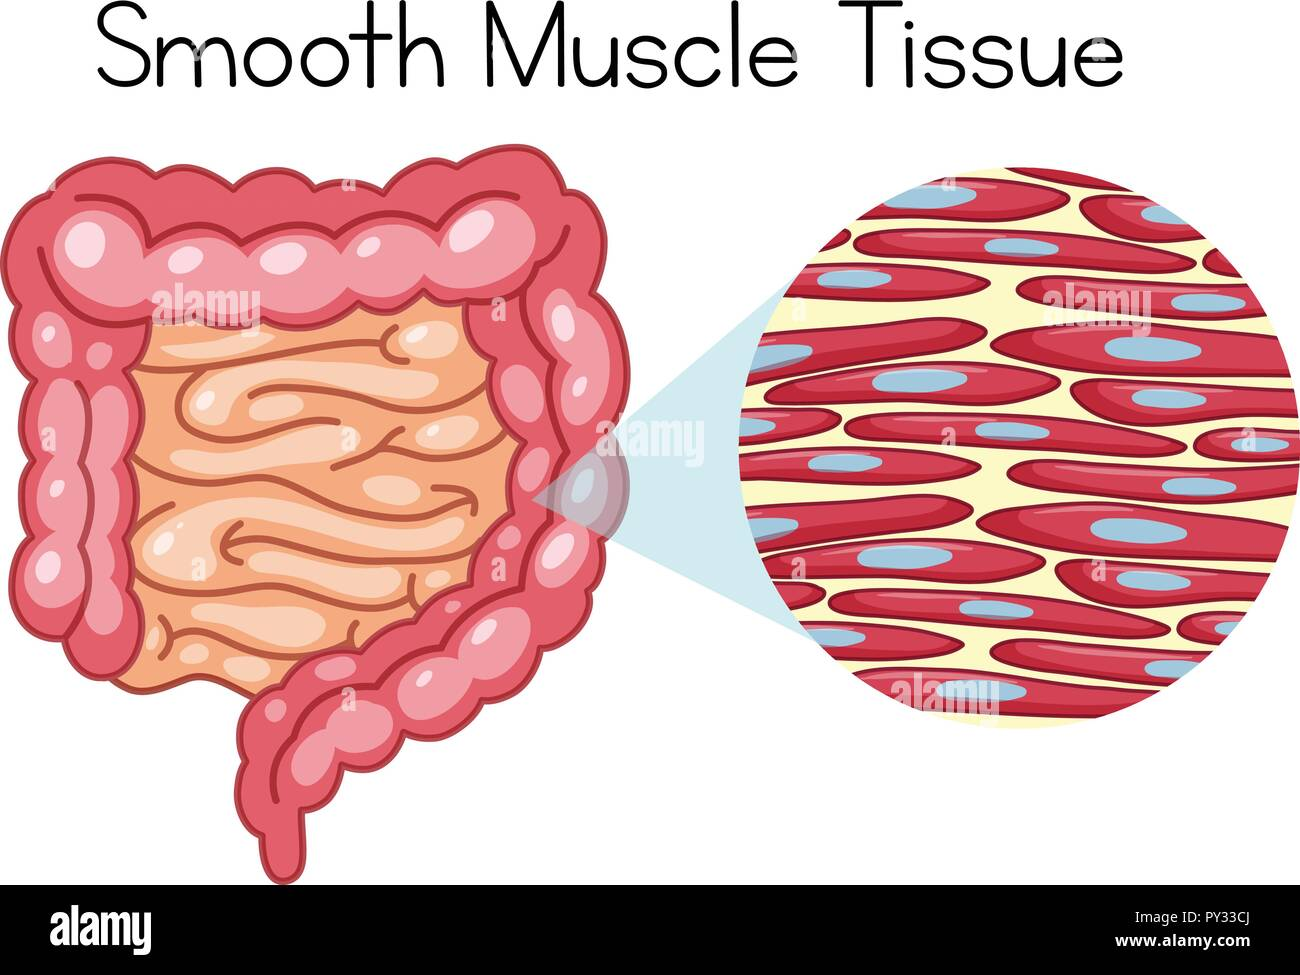 hight resolution of anatomy of smooth muscle tissue illustration stock image